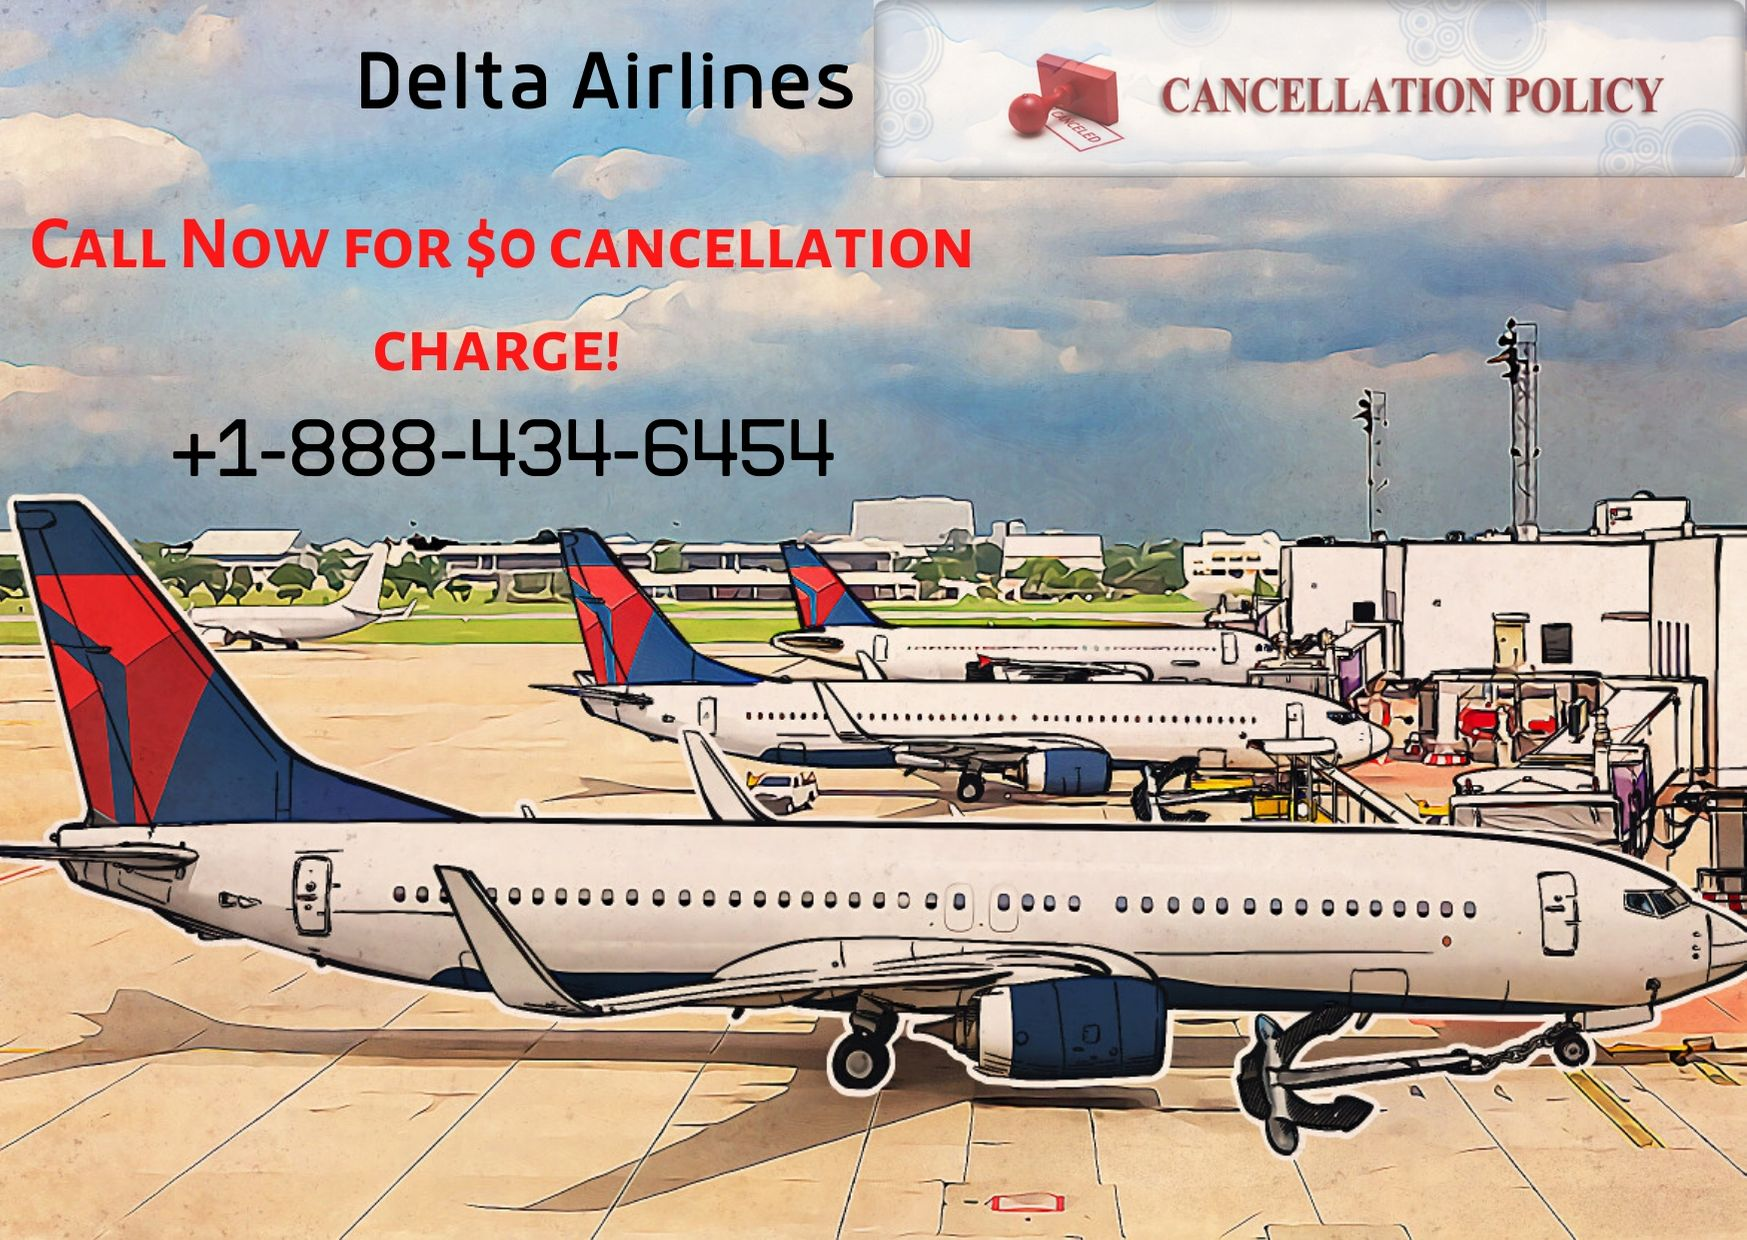 Delta Cancellation Policy || Call +1-888-434-6454 For $0 Cancellation Charge